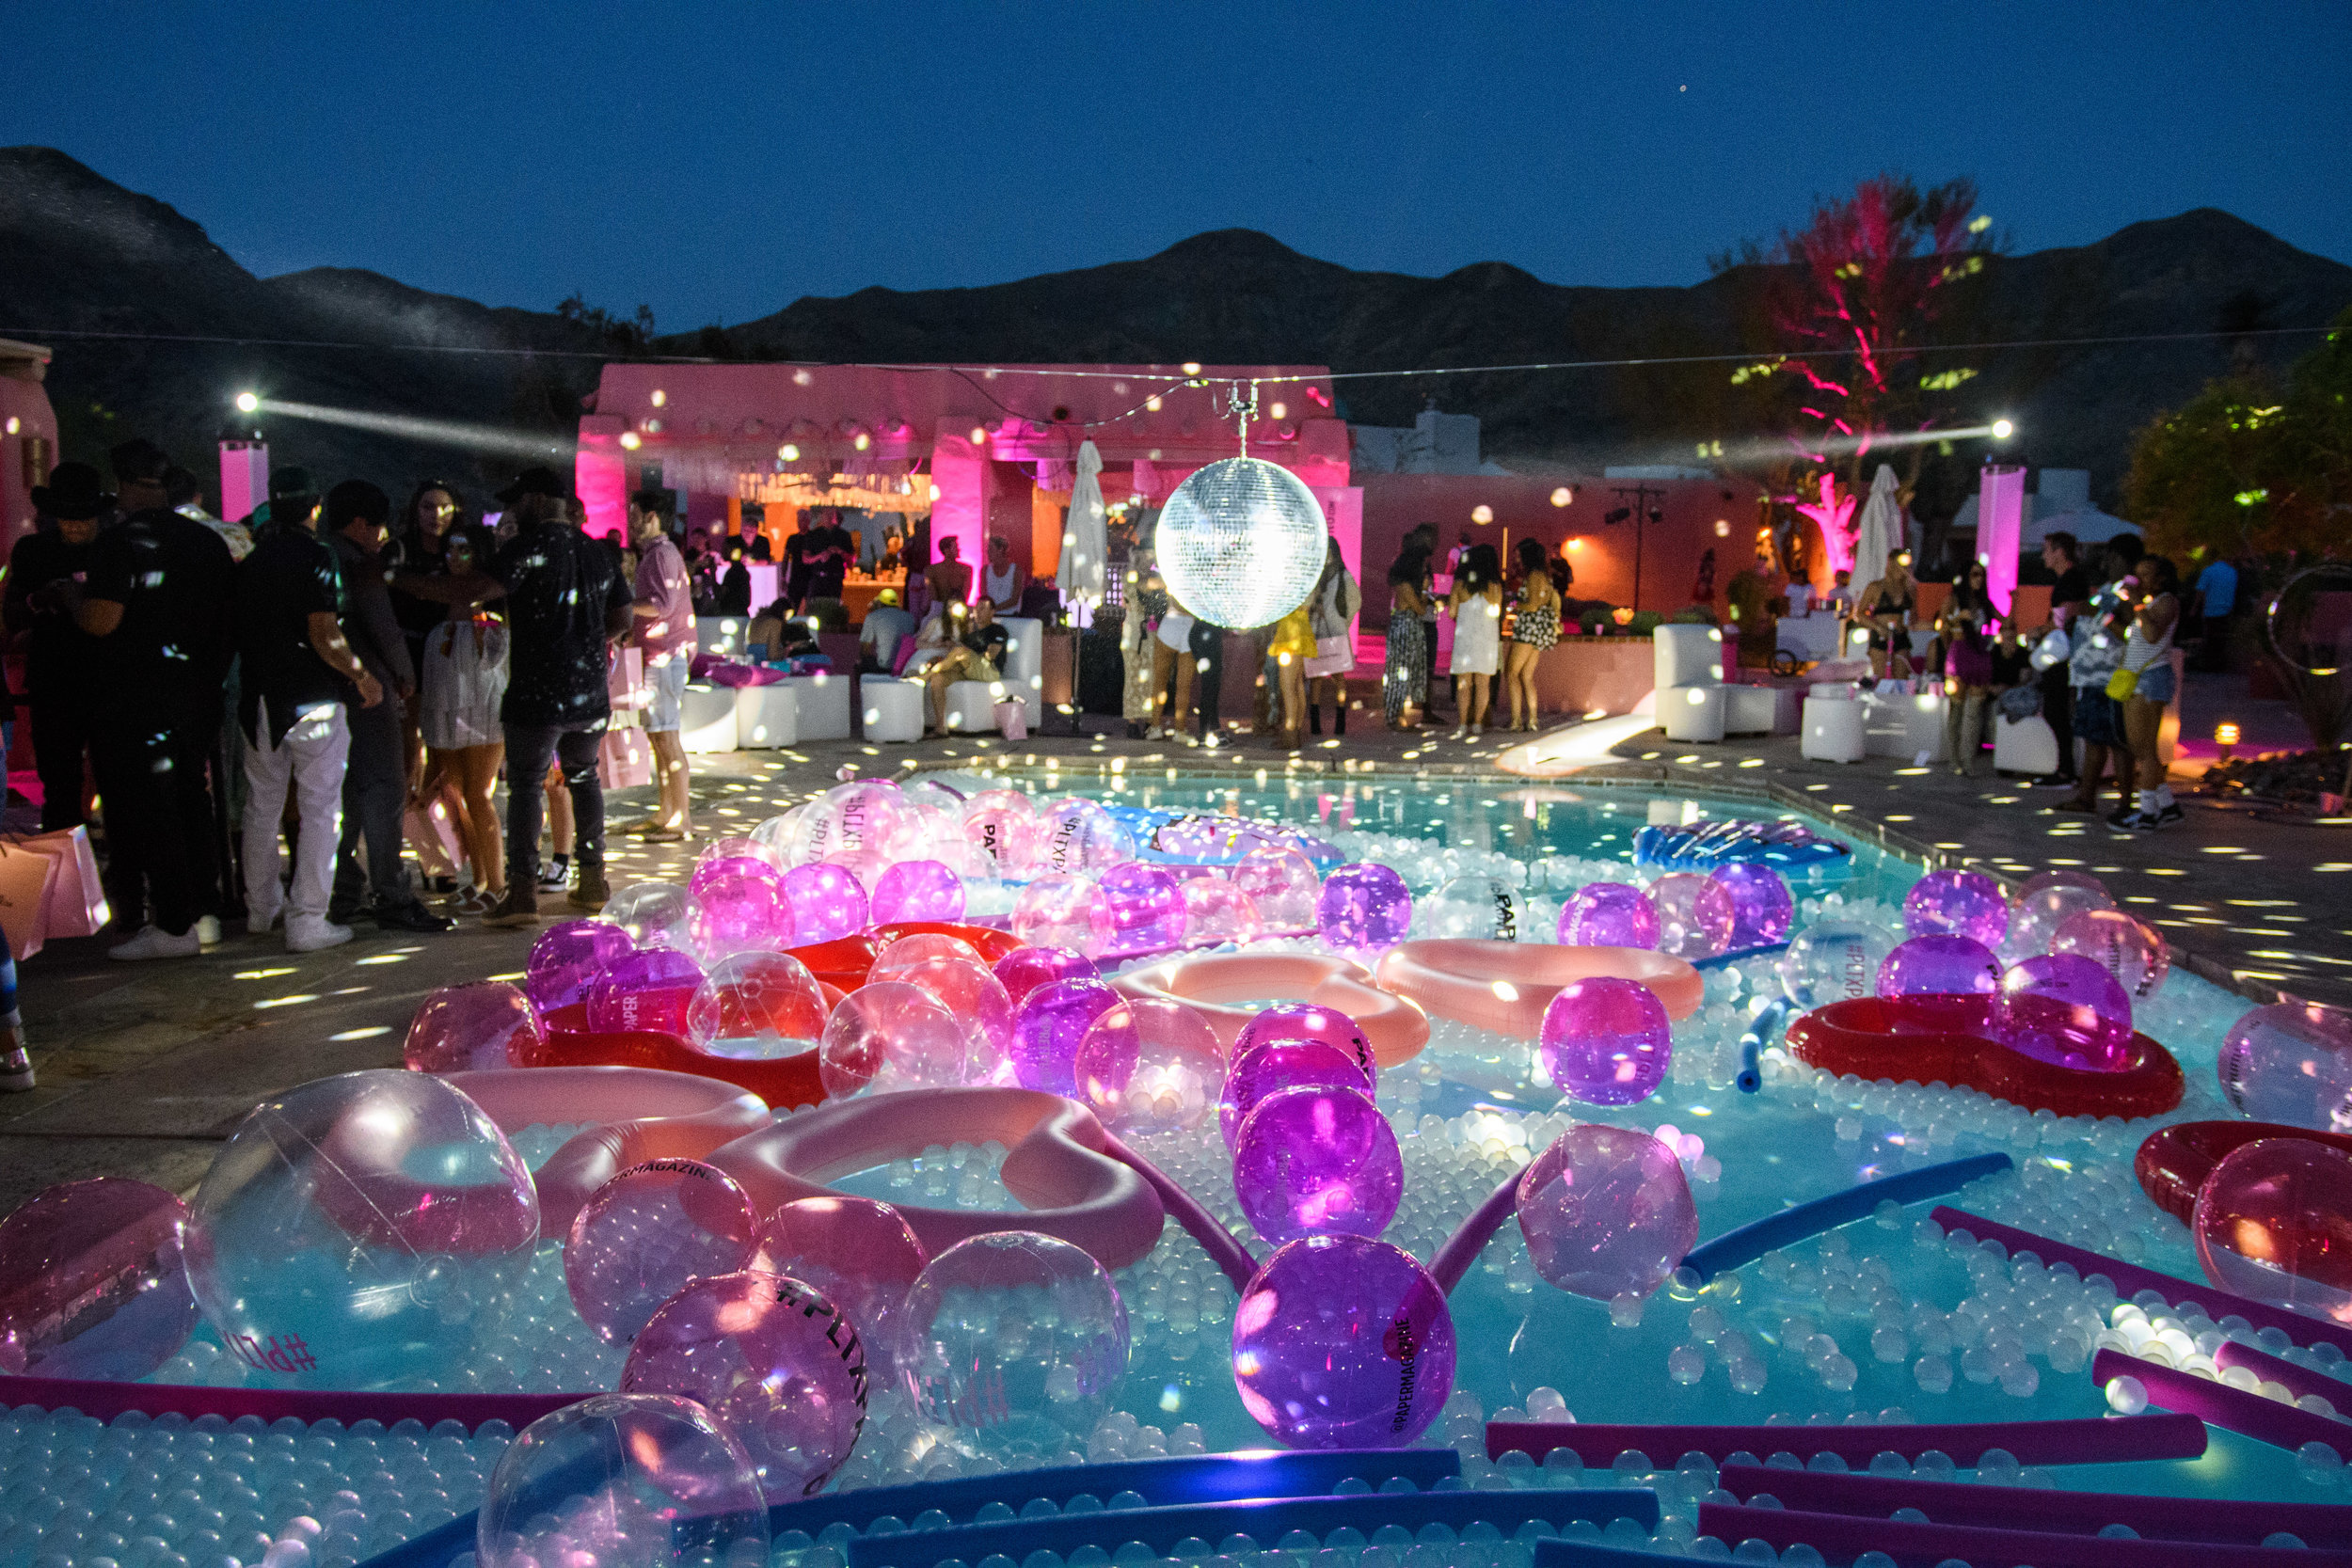 Ultimate Hollywood Coachella Poolside Party disco ball spins above the pool.jpg